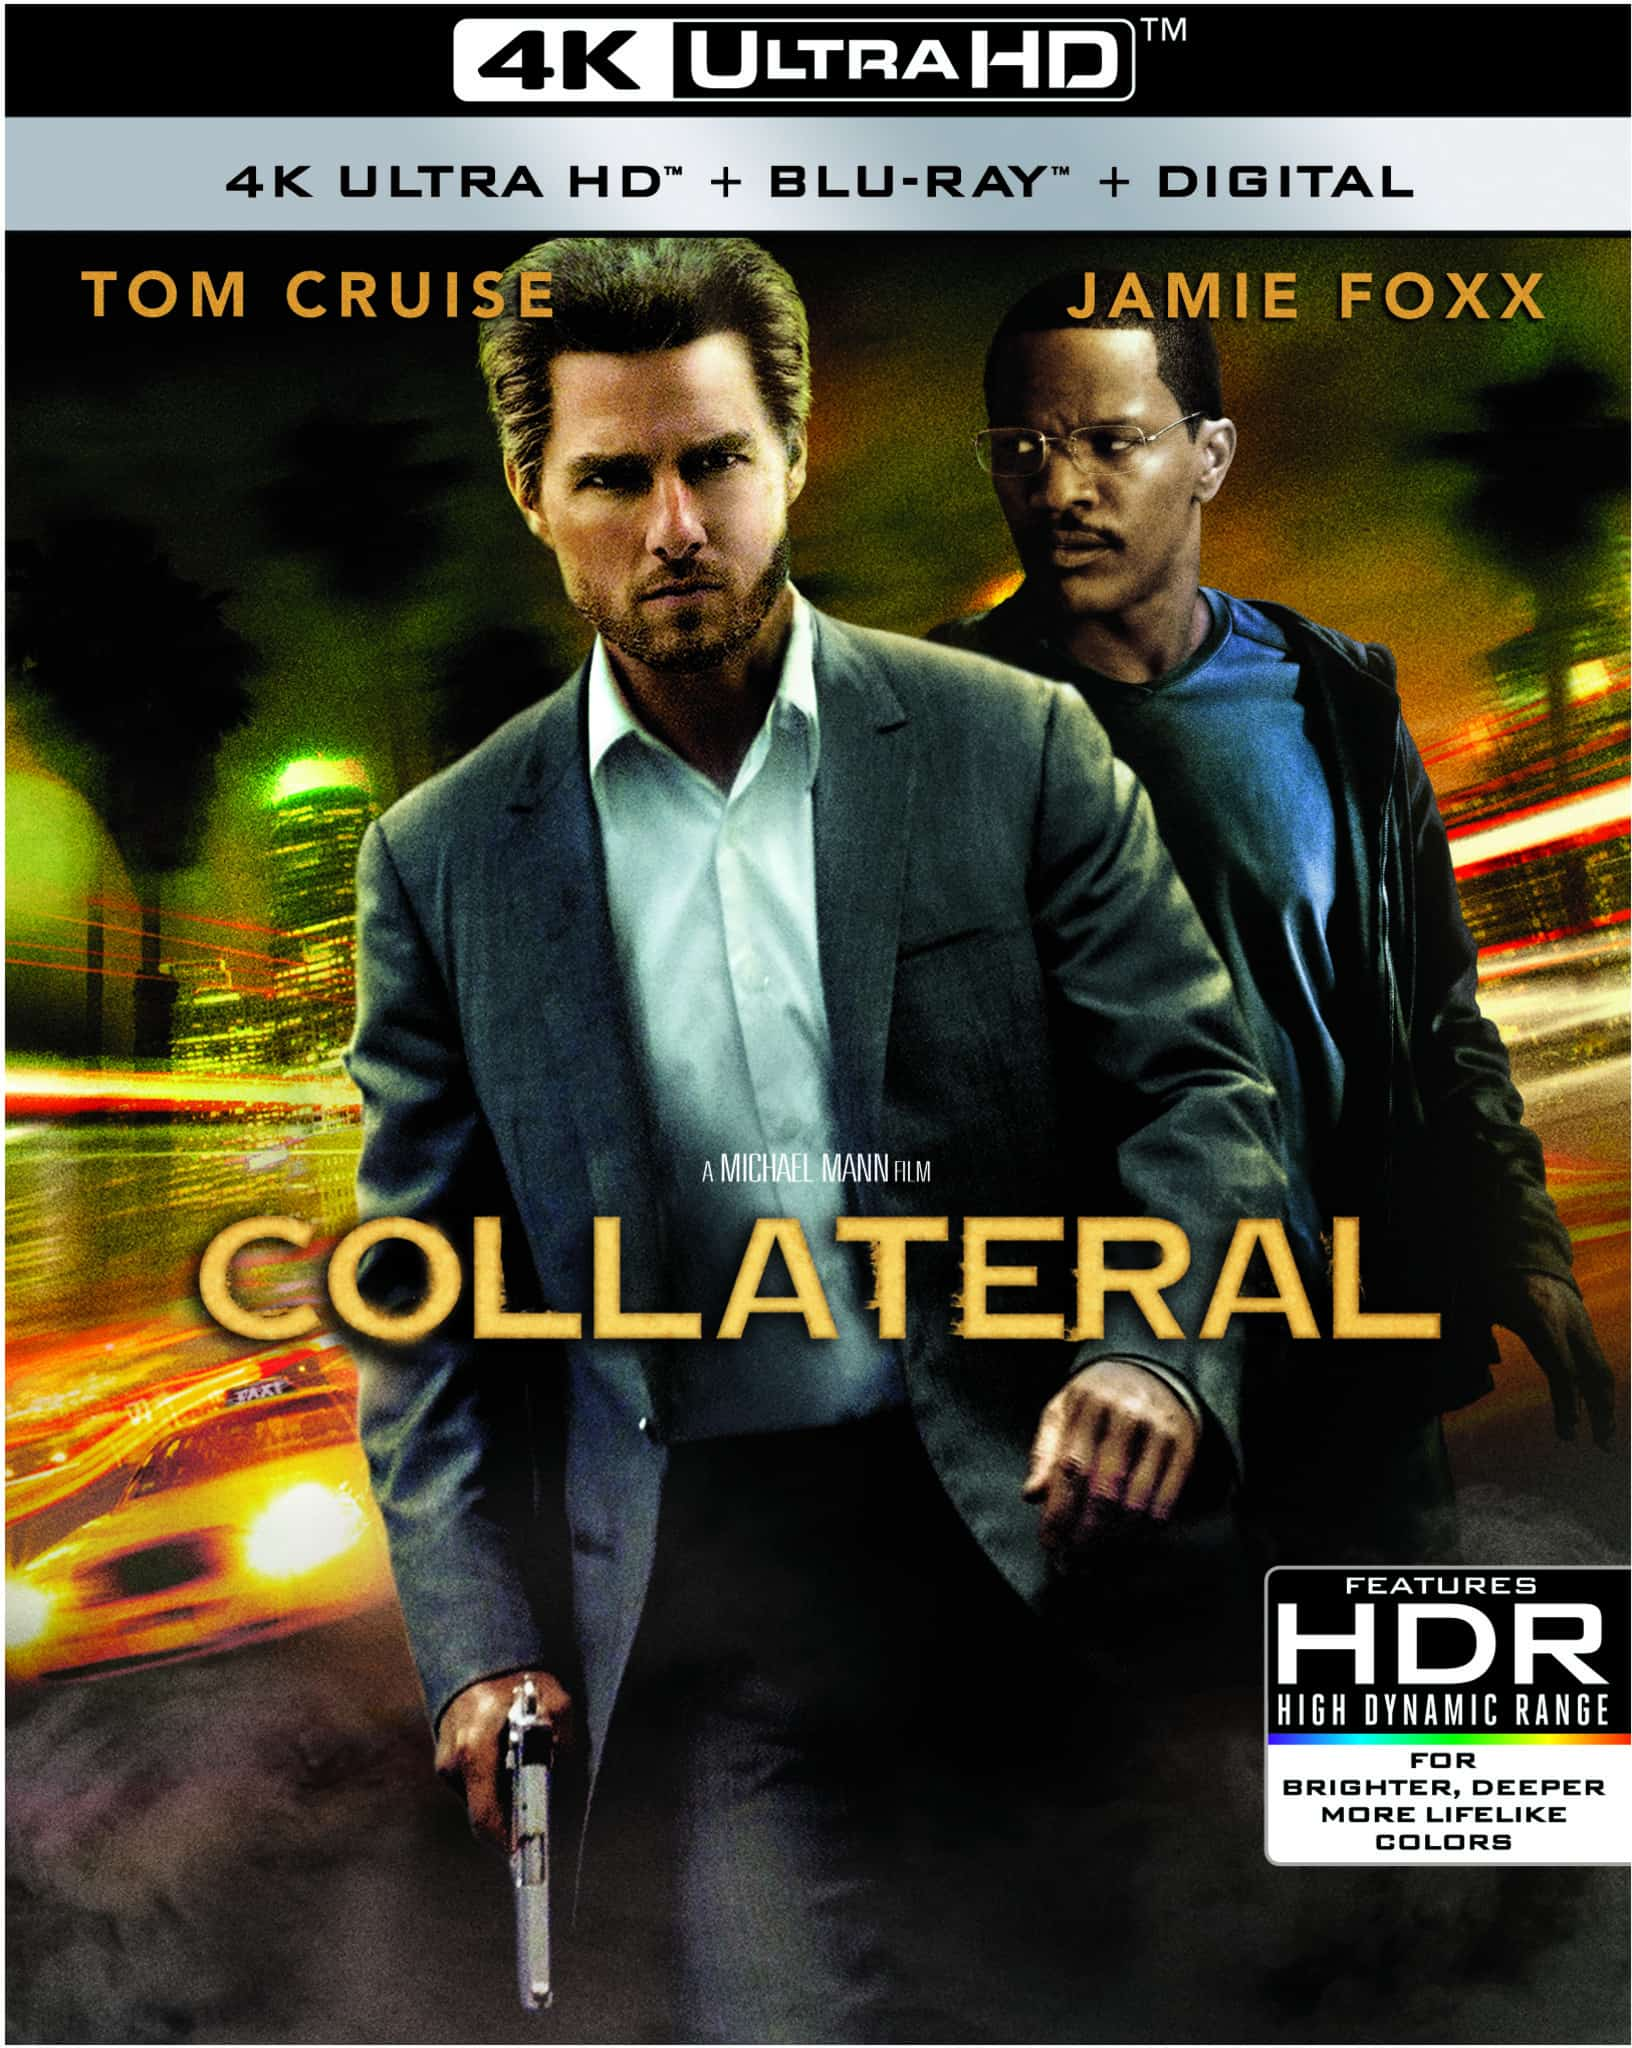 Collateral 4K Paramount